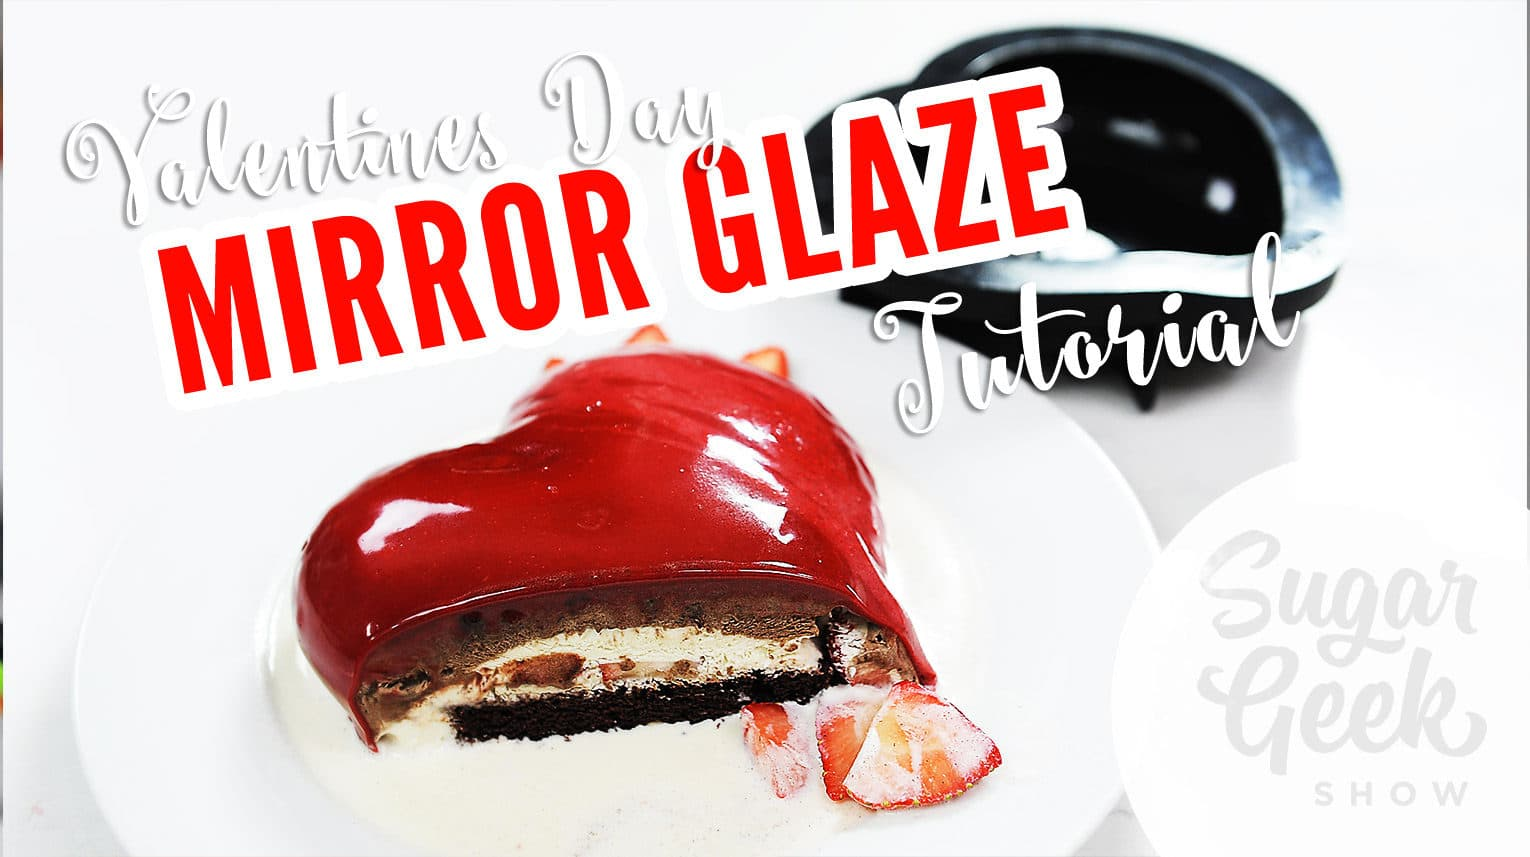 Learn how to make this mirror glaze heart cake, just in time for Valentine's Day! This delicious dessert packed with strawberries, candy bar bits, and a special Guinness beer cake is the perfect decadent candy for him or her this holiday. Learn the step-by-step instructions easily with Liz Marek as she works live (previously-recorded). Click through for full tutorial >>> sugargeekshow.com